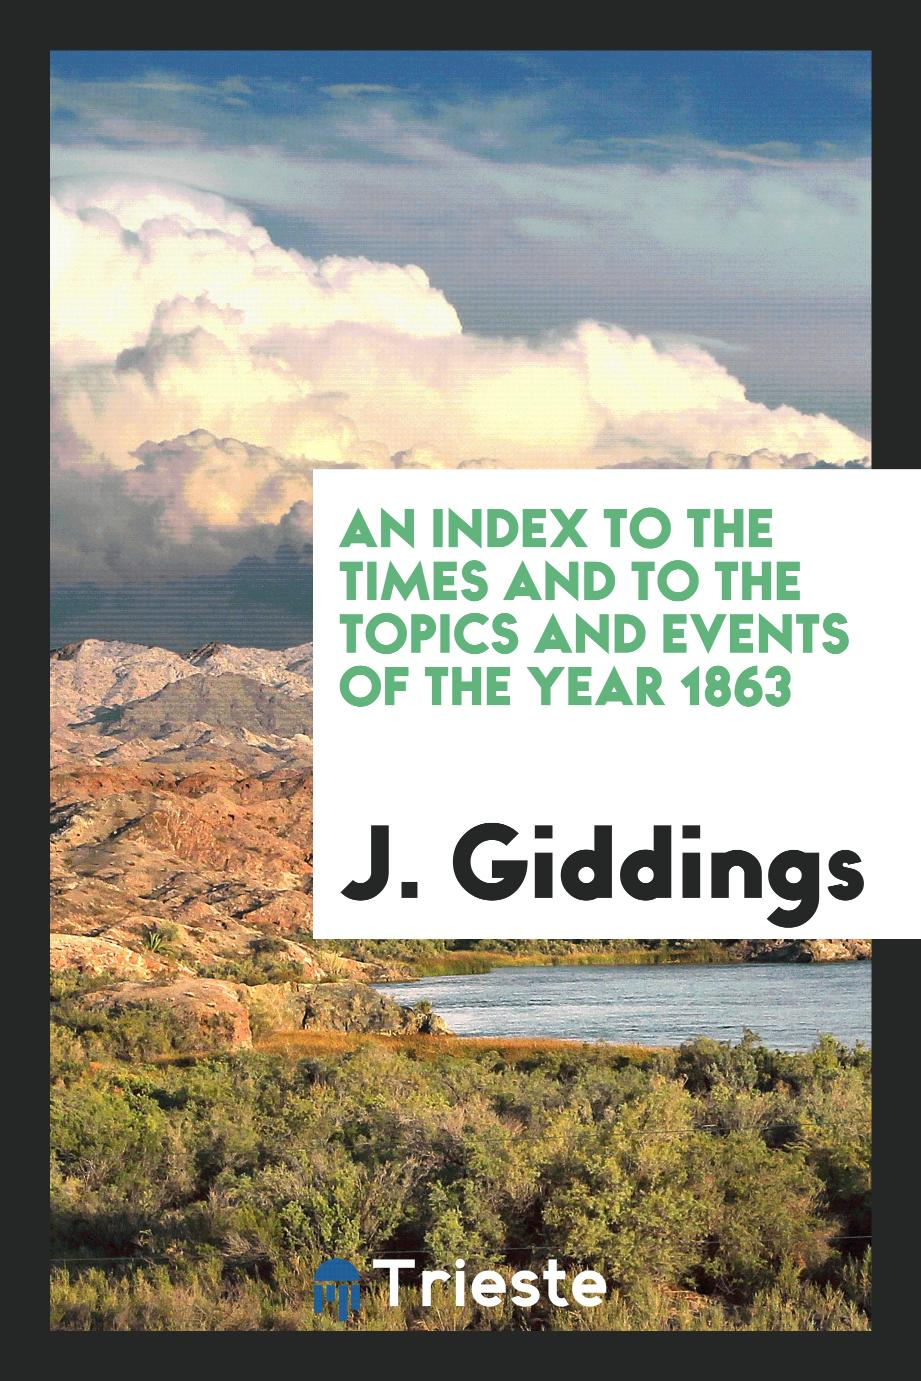 An Index to the Times and to the Topics and Events of the Year 1863